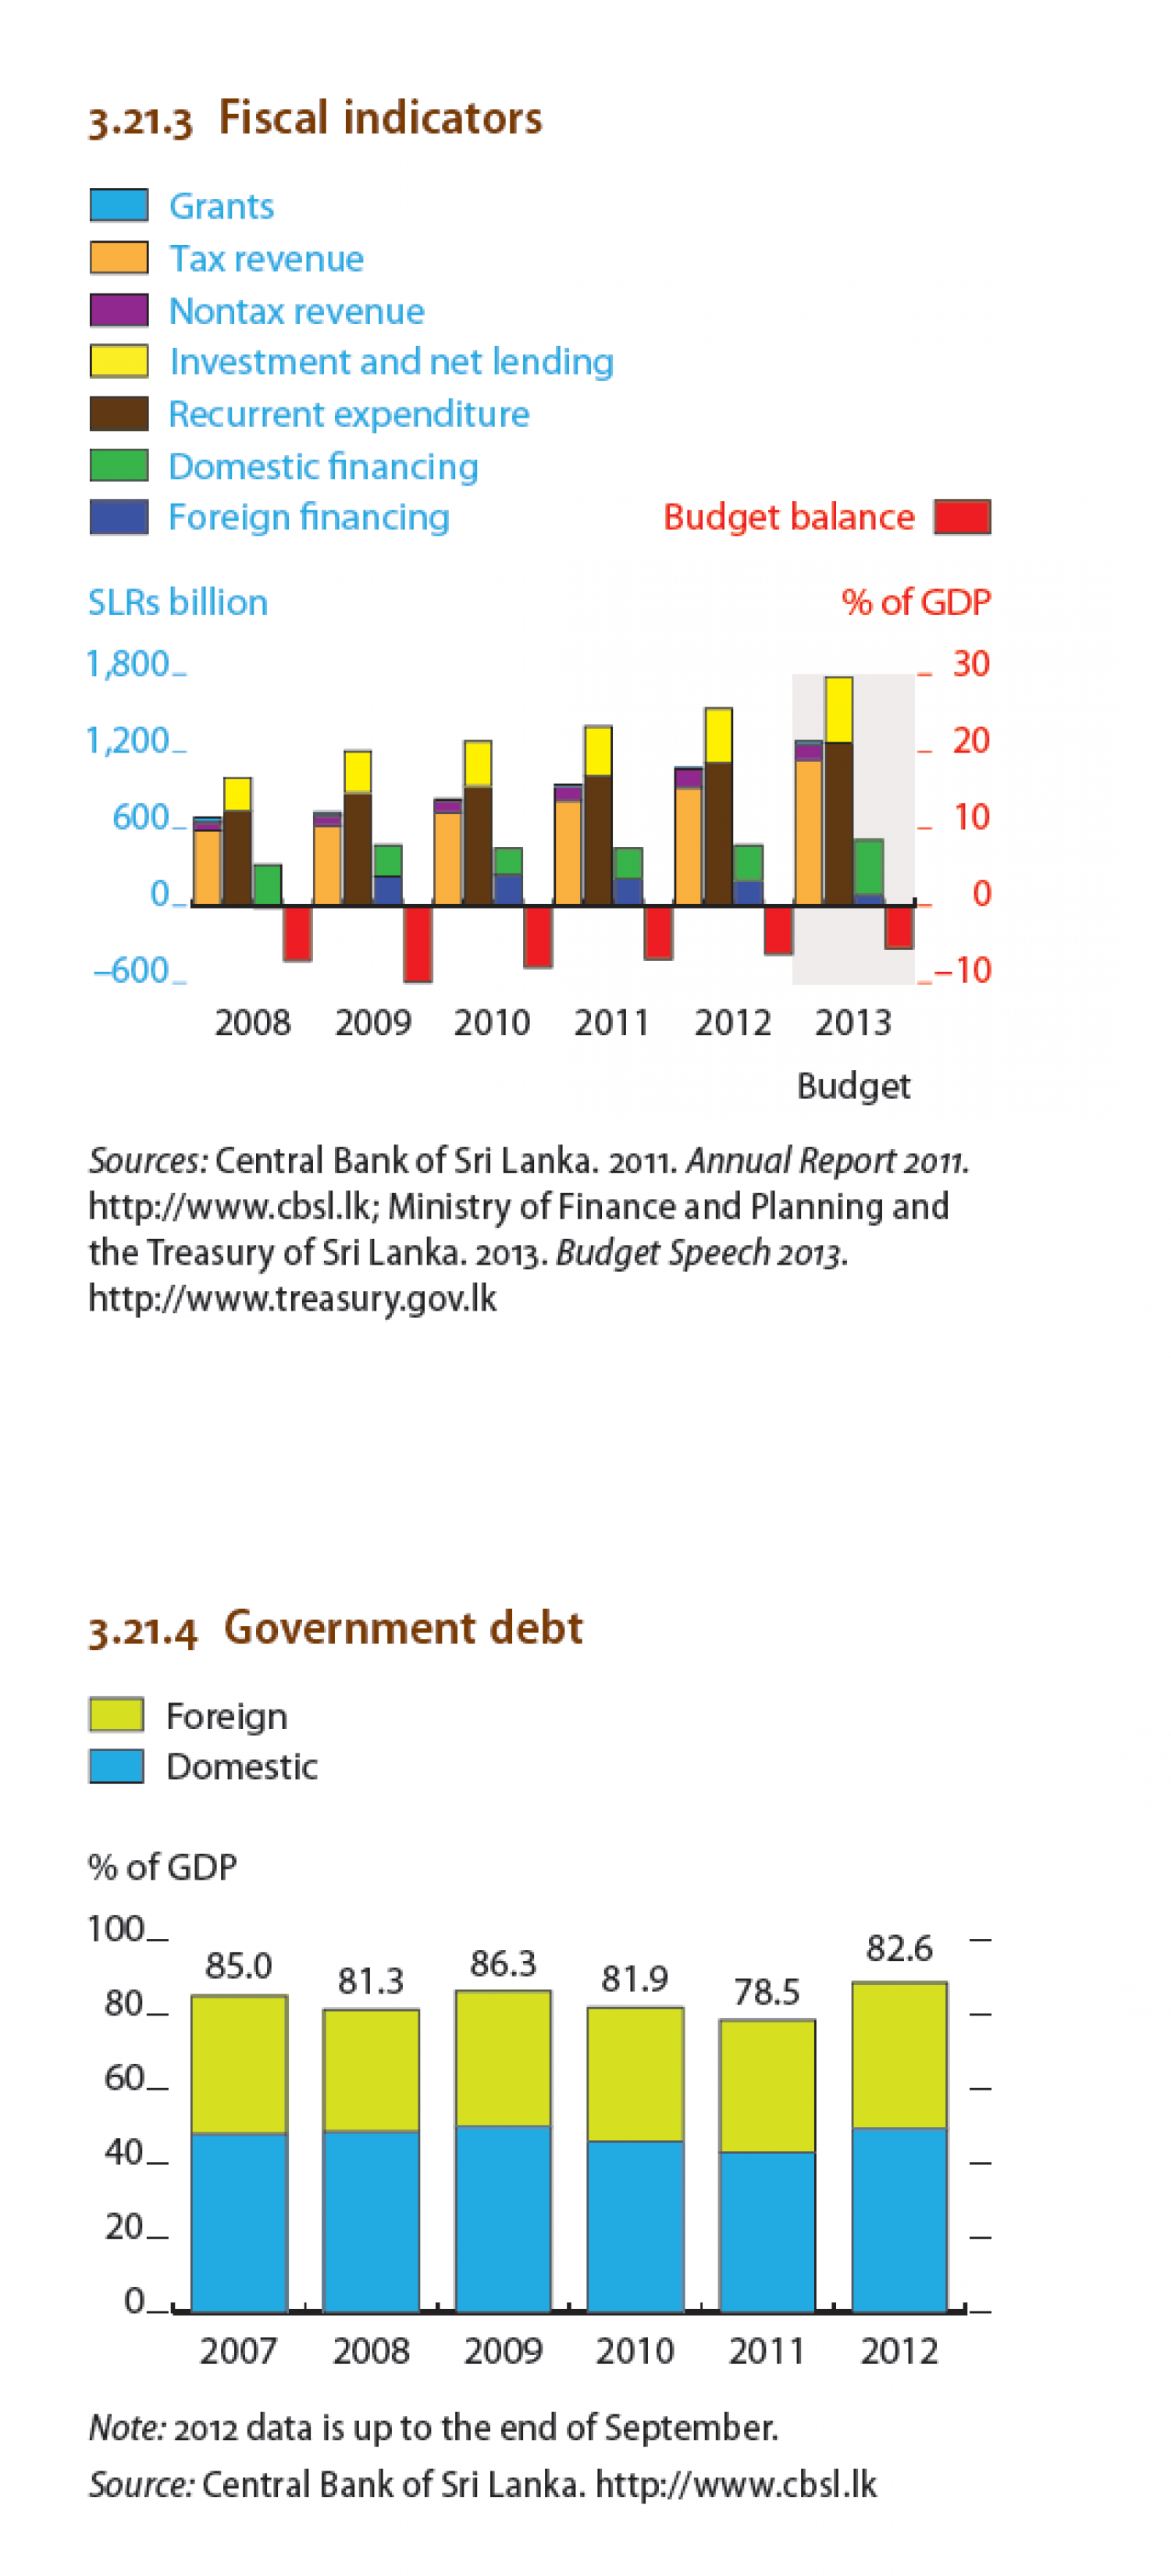 Sri Lanka - Fiscal indicators, Government debt Infographic